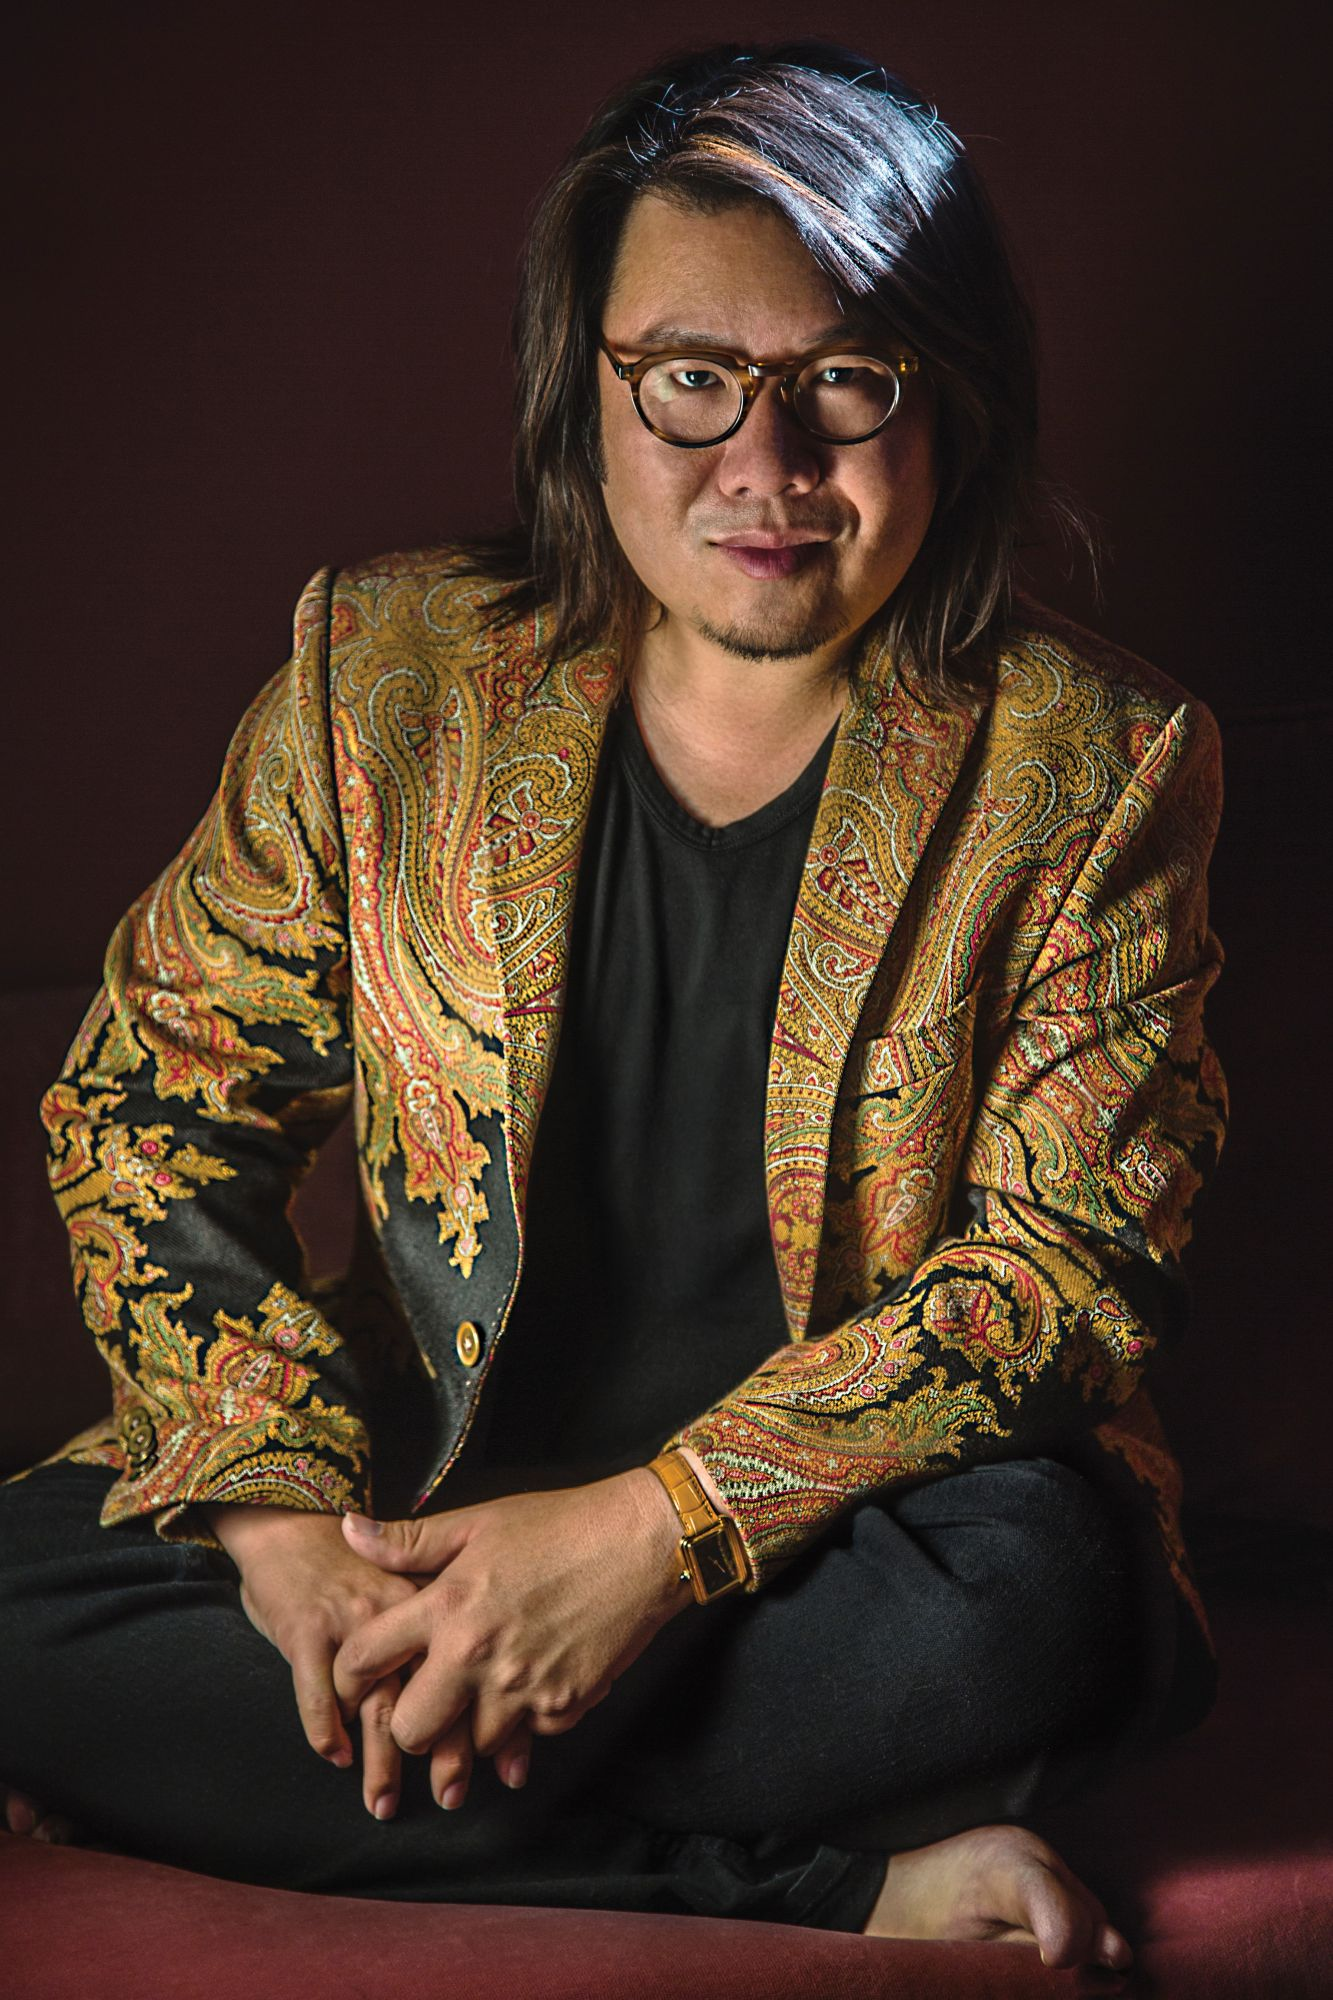 The Story Behind Kevin Kwan's Crazy Rich Asians Trilogy